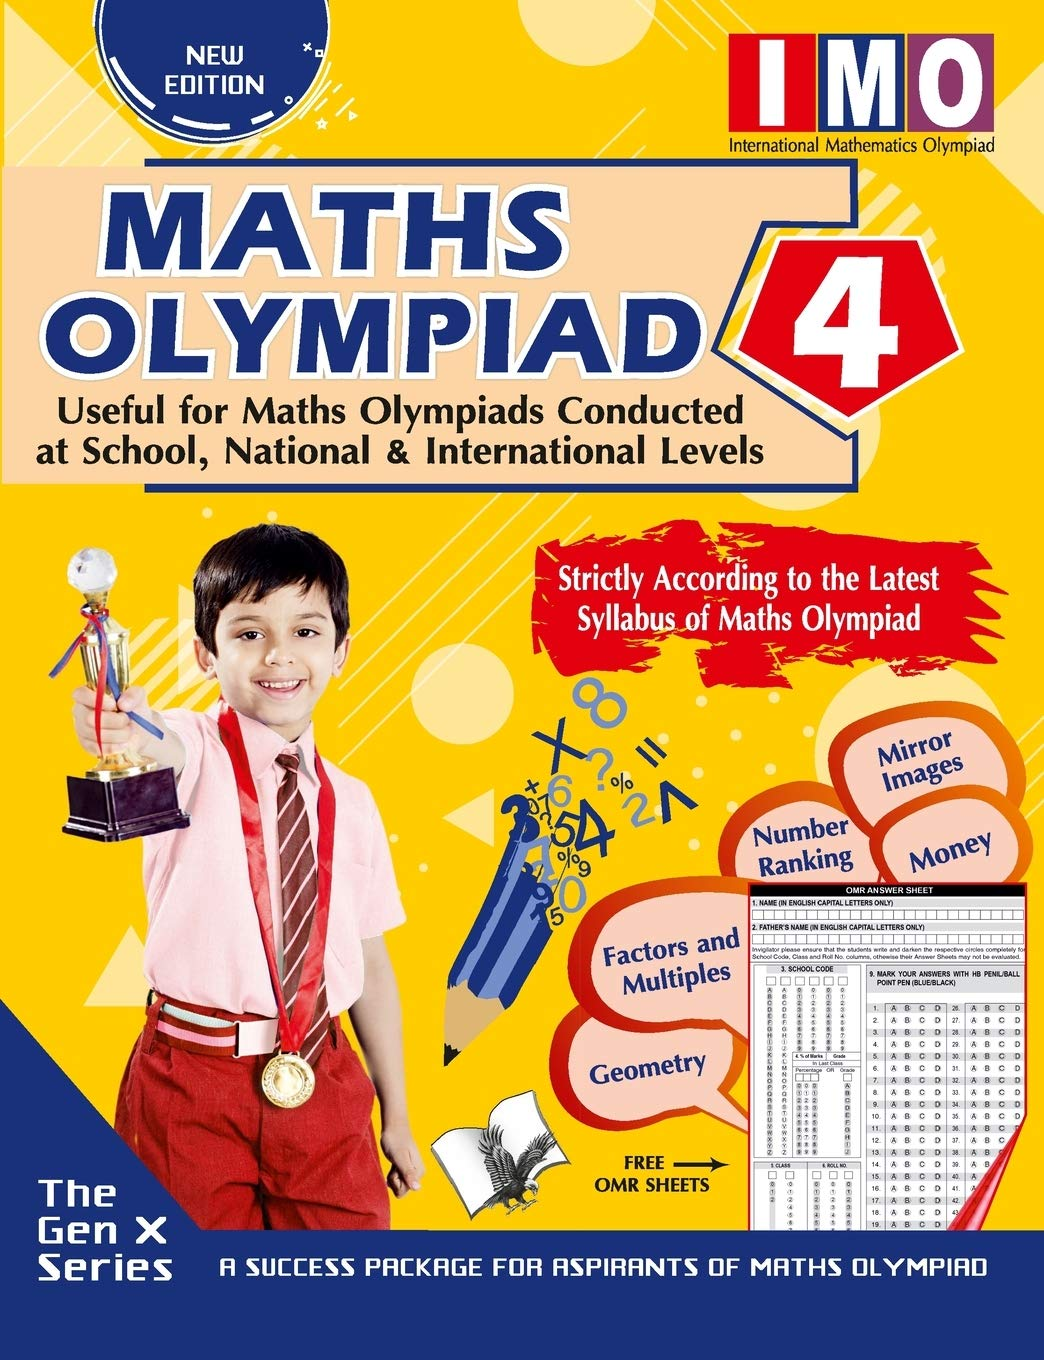 MATHS OLYMPIAD 4 (USEFUL FOR MATHS OLYMPIADS CONDUCTED AT SCHOOL, NATIONAL & INTERNATIONAL LEVELS)